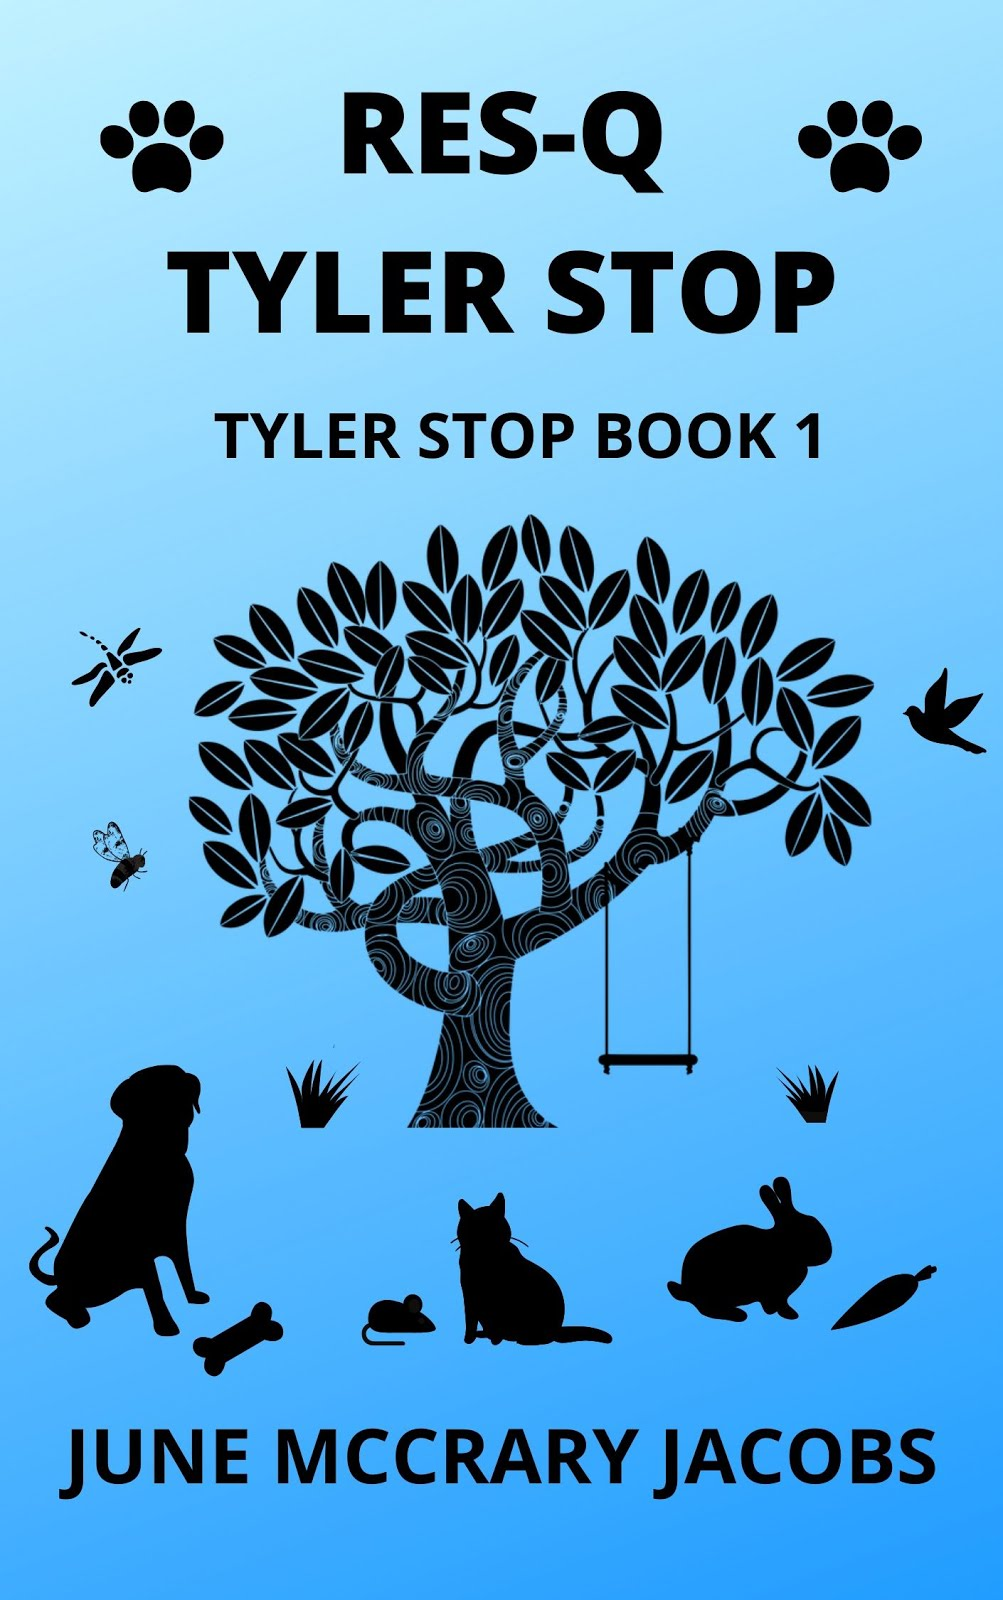 FIND 'RES-Q TYLER STOP' ON AMAZON